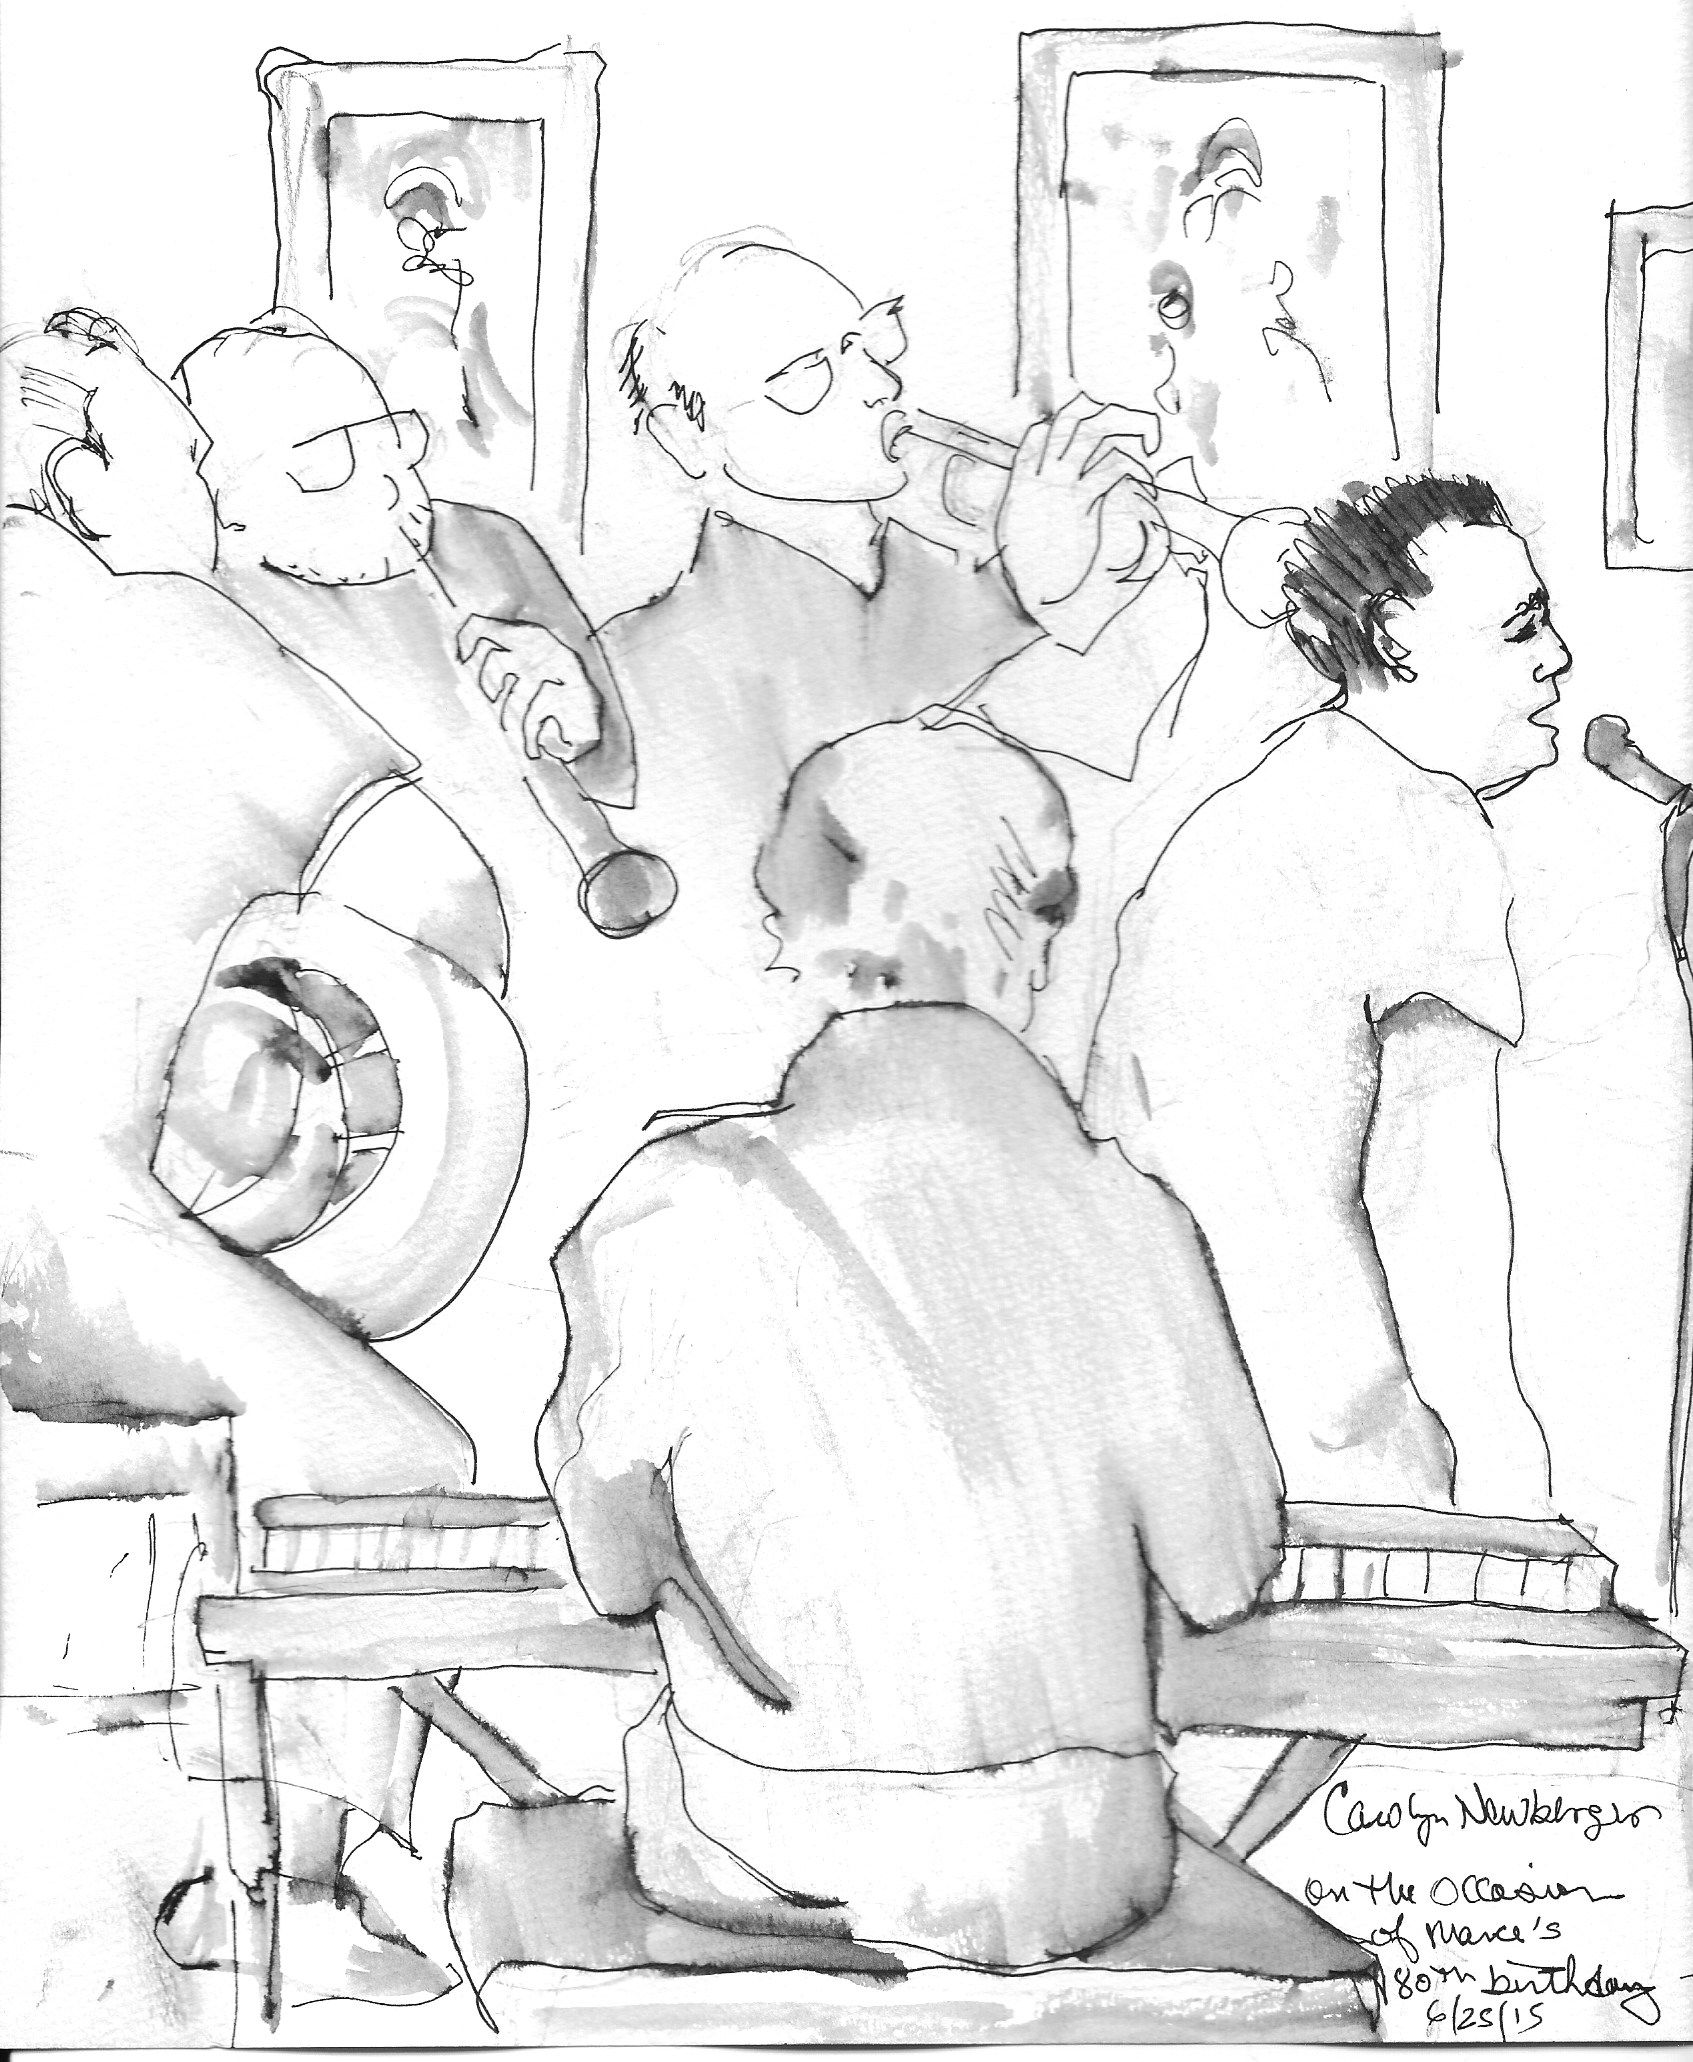 pencils sketch of all musicians except Herb Gardner, who was erased so she could add David